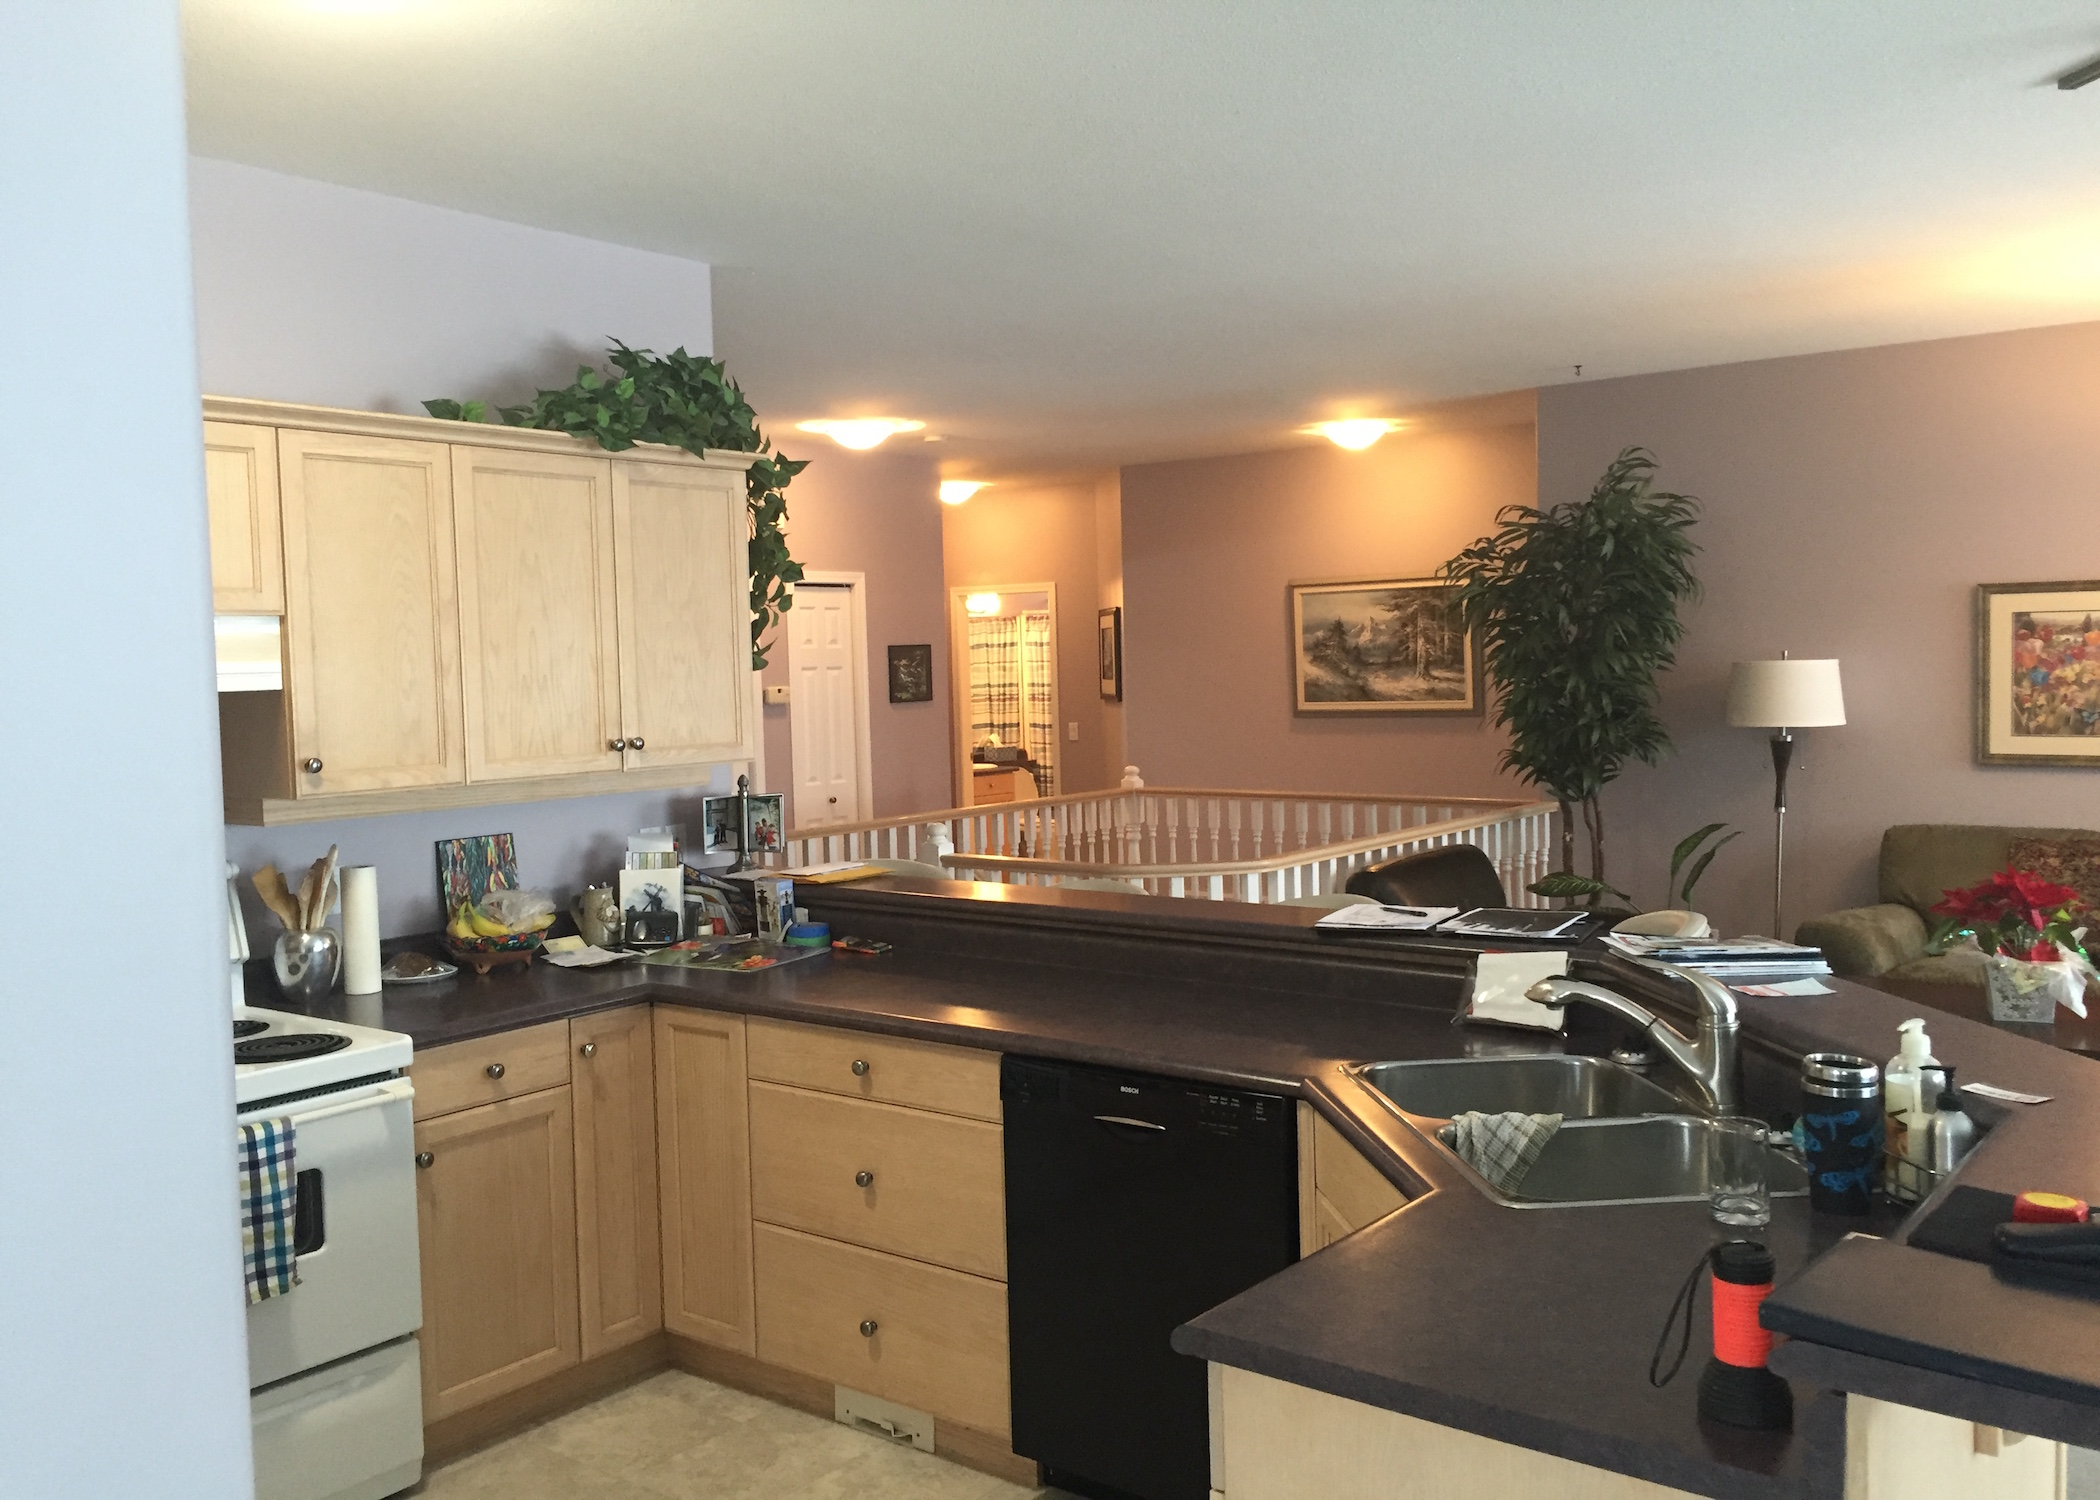 Before-Kitchen/Living